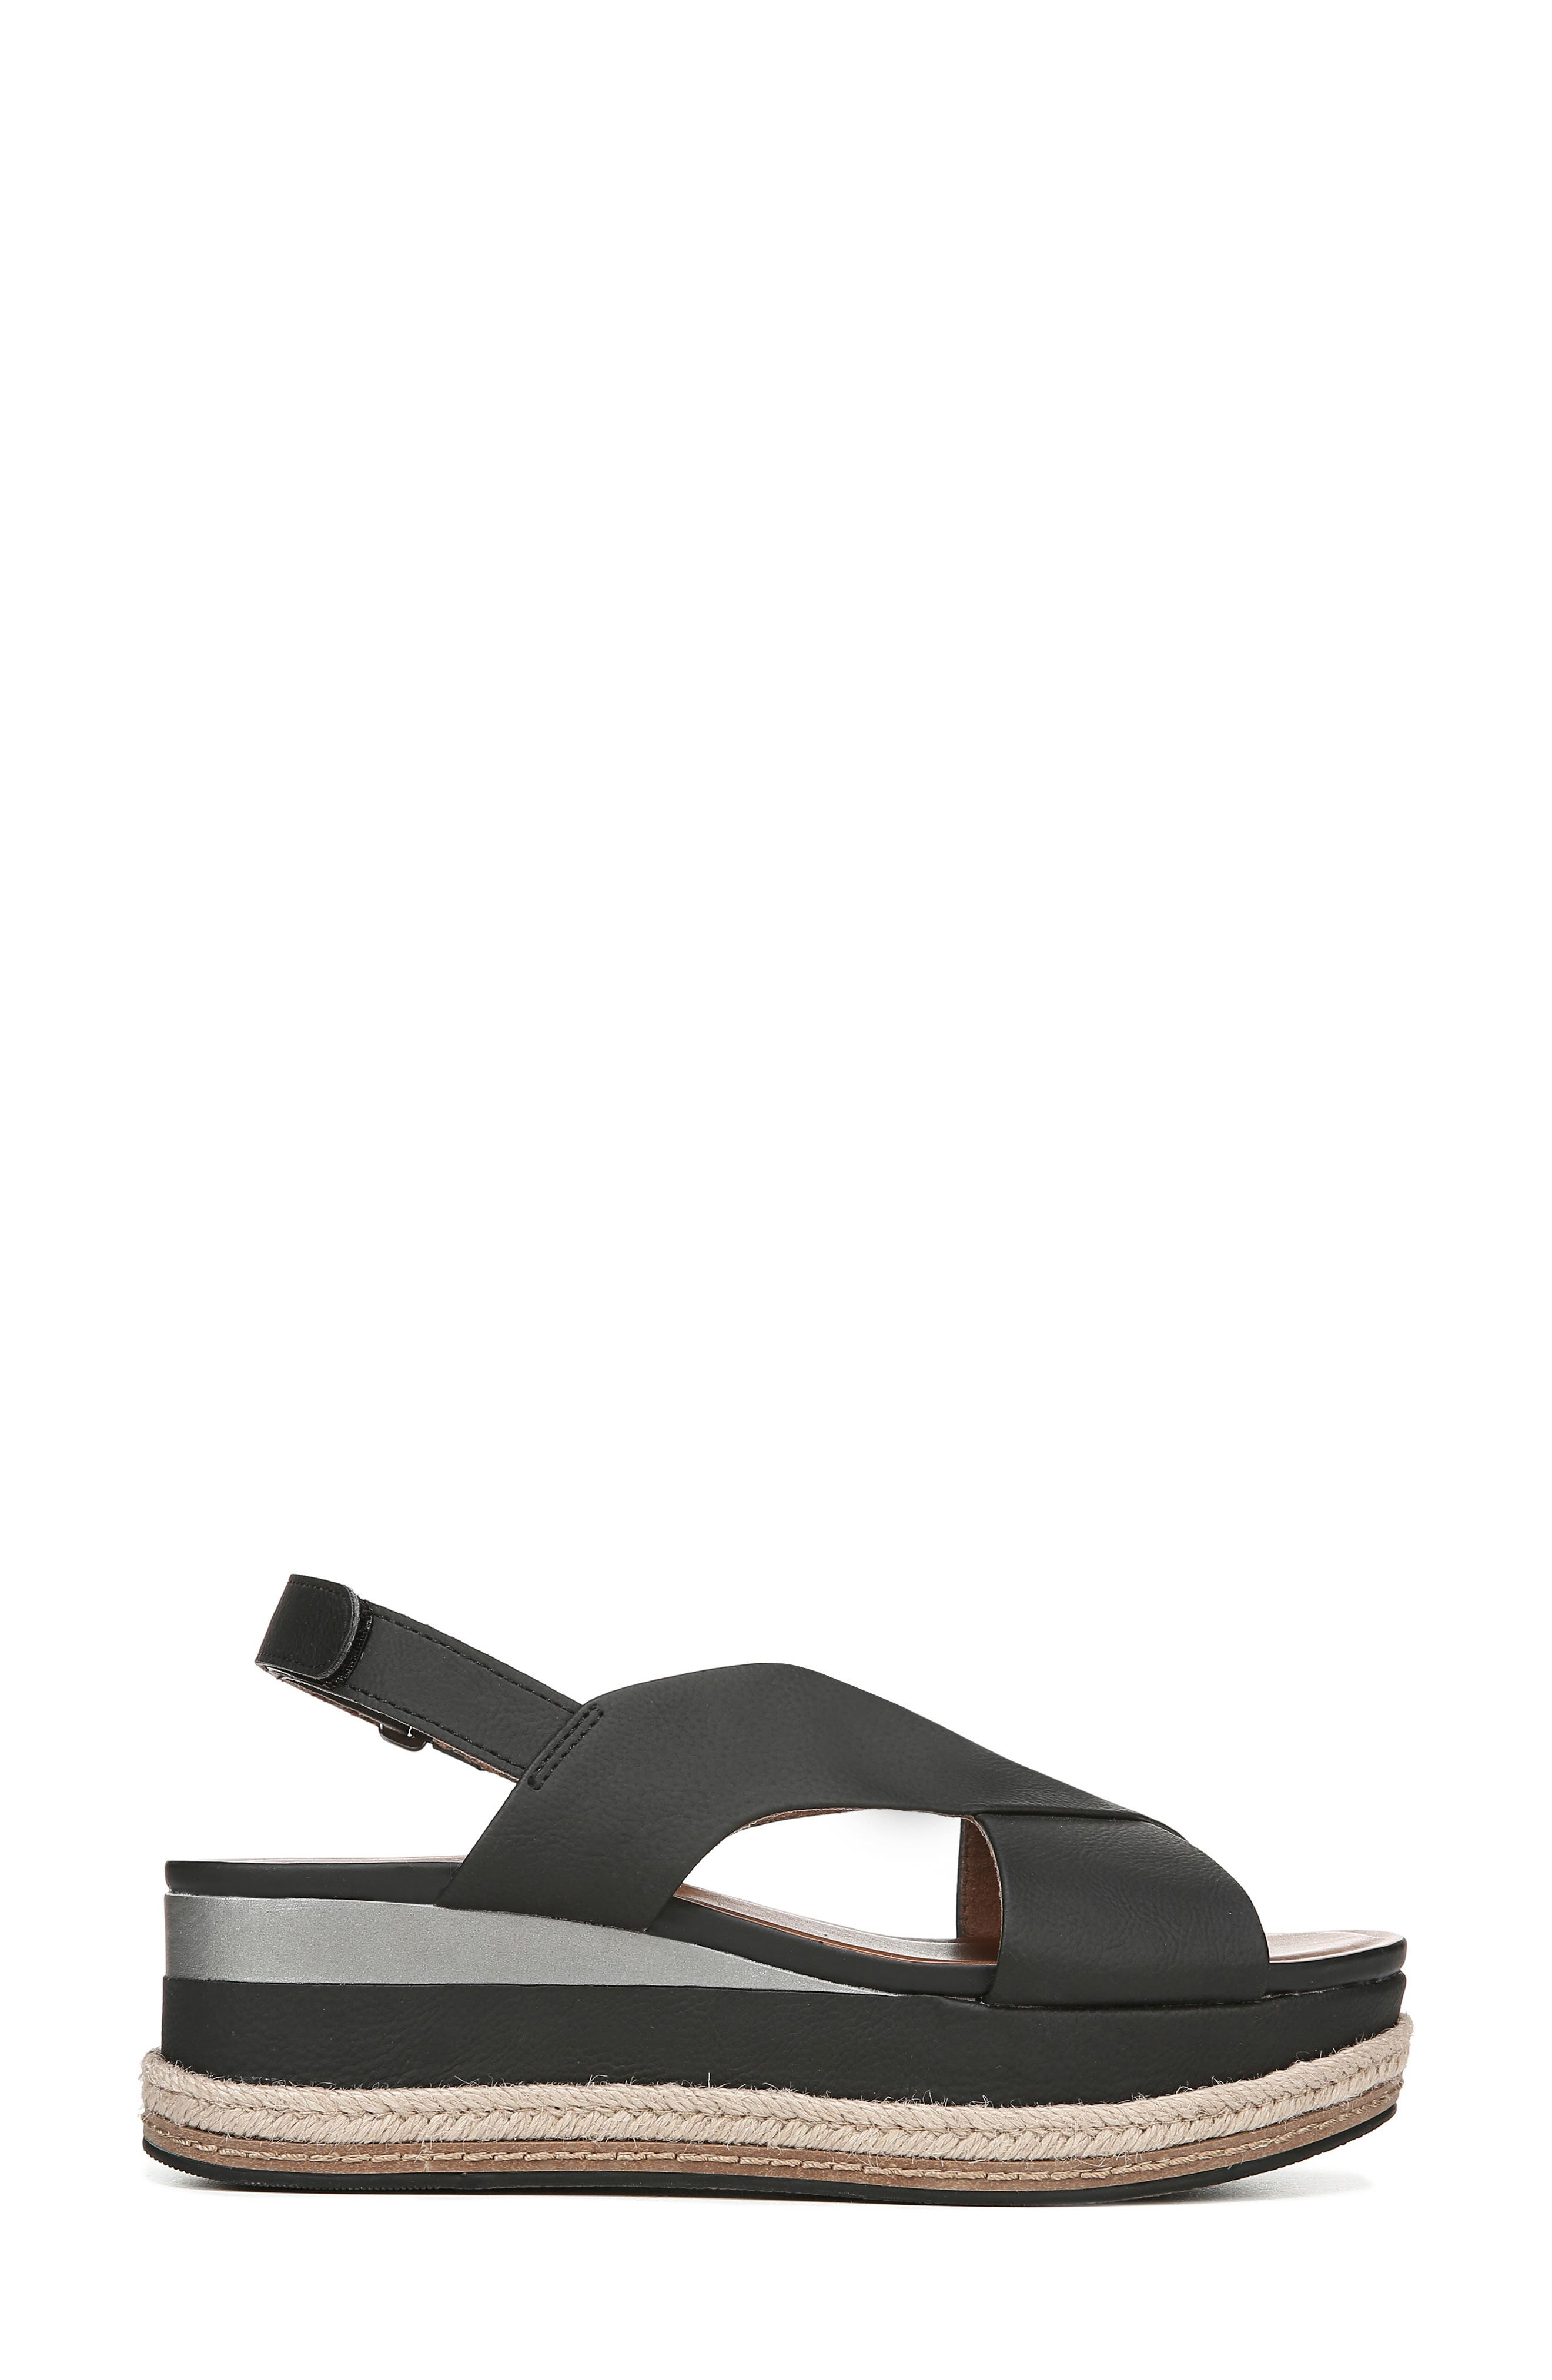 ,                             Baya Espadrille Wedge Sandal,                             Alternate thumbnail 3, color,                             BLACK NUBUCK LEATHER